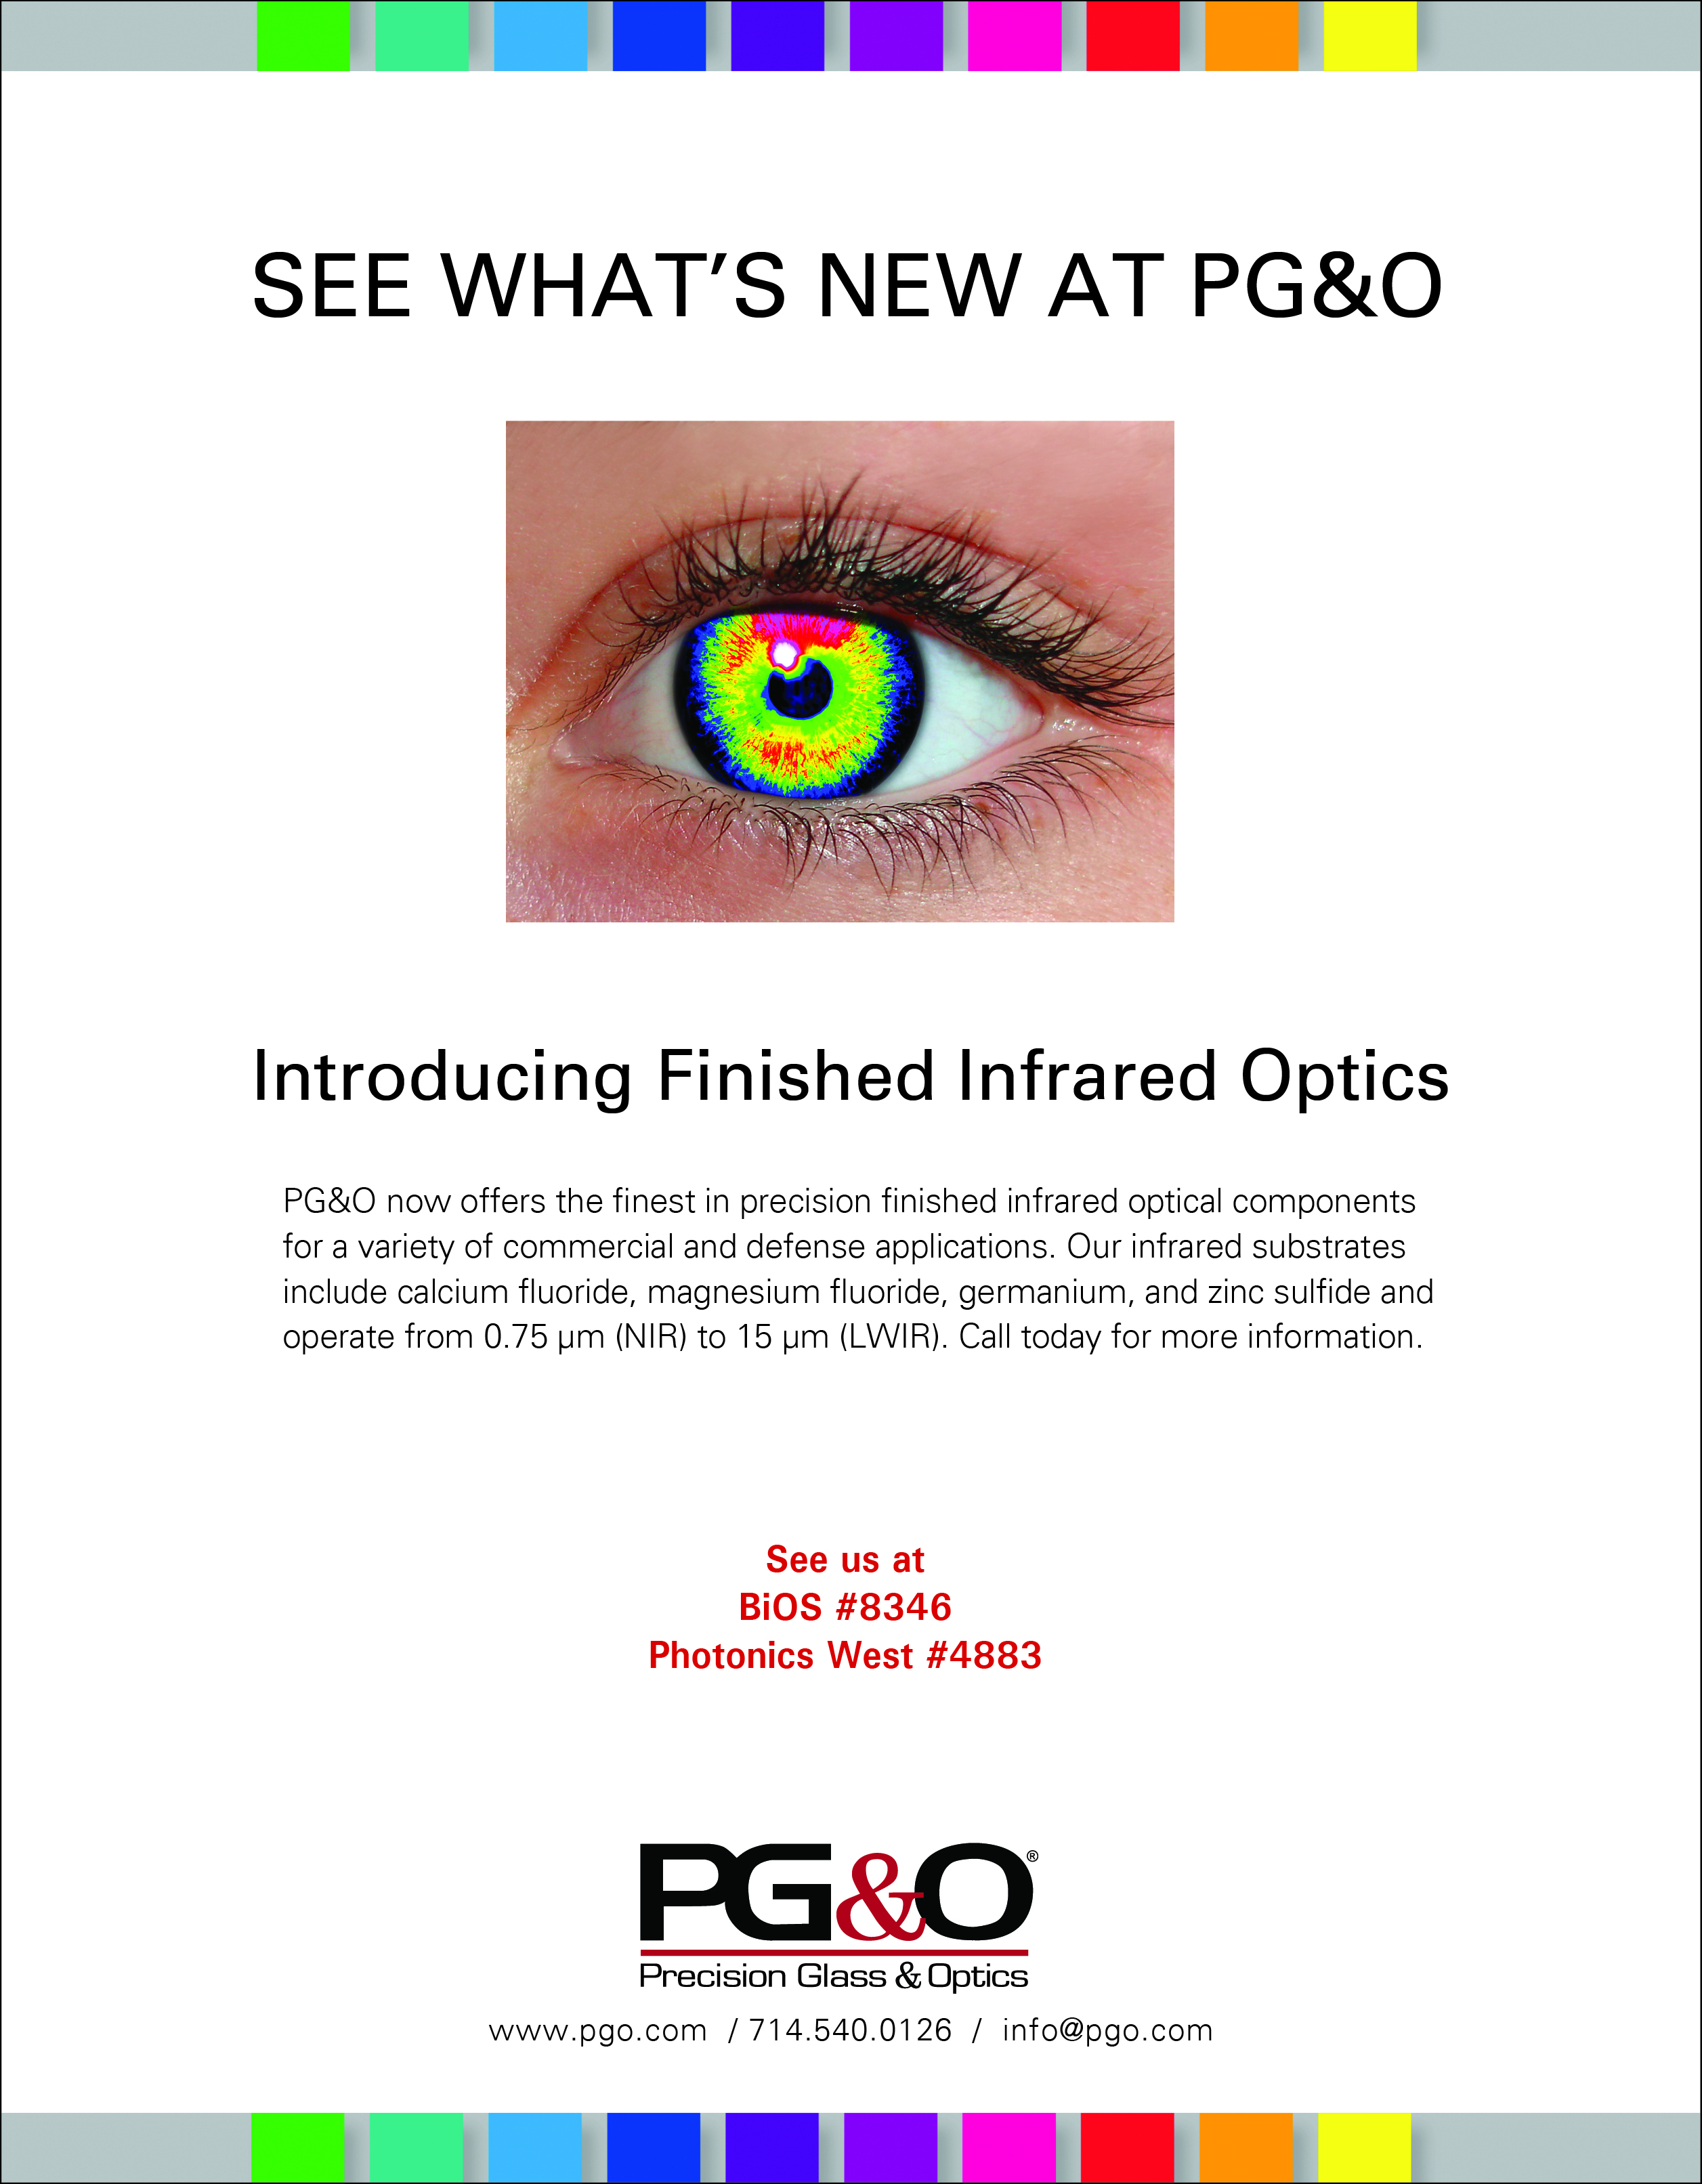 PG&O Finished IR Optics